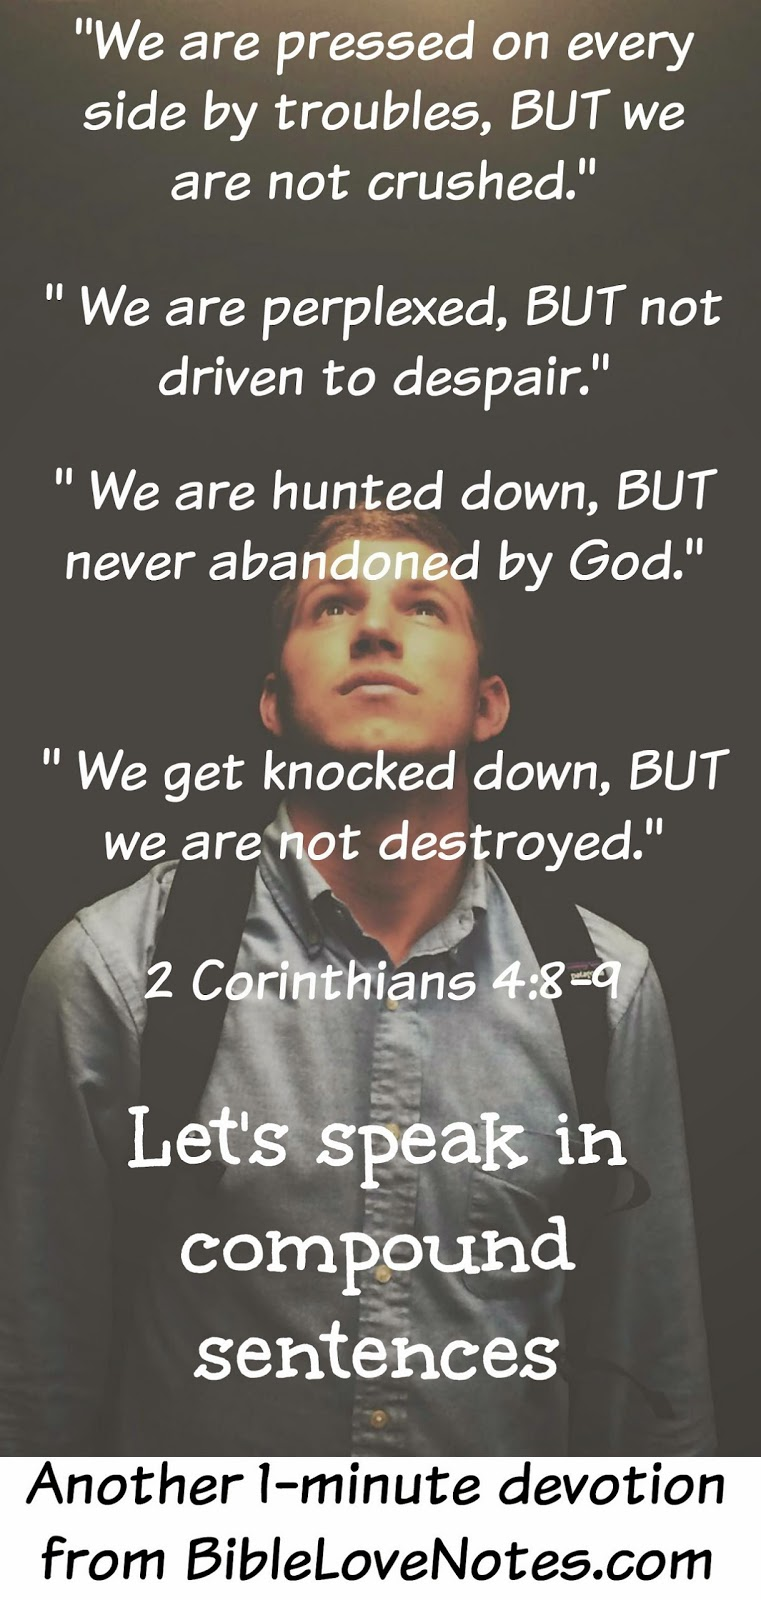 2 Corinthians 4:8-9, Apostle Paul saw God in situations, God never abandons us